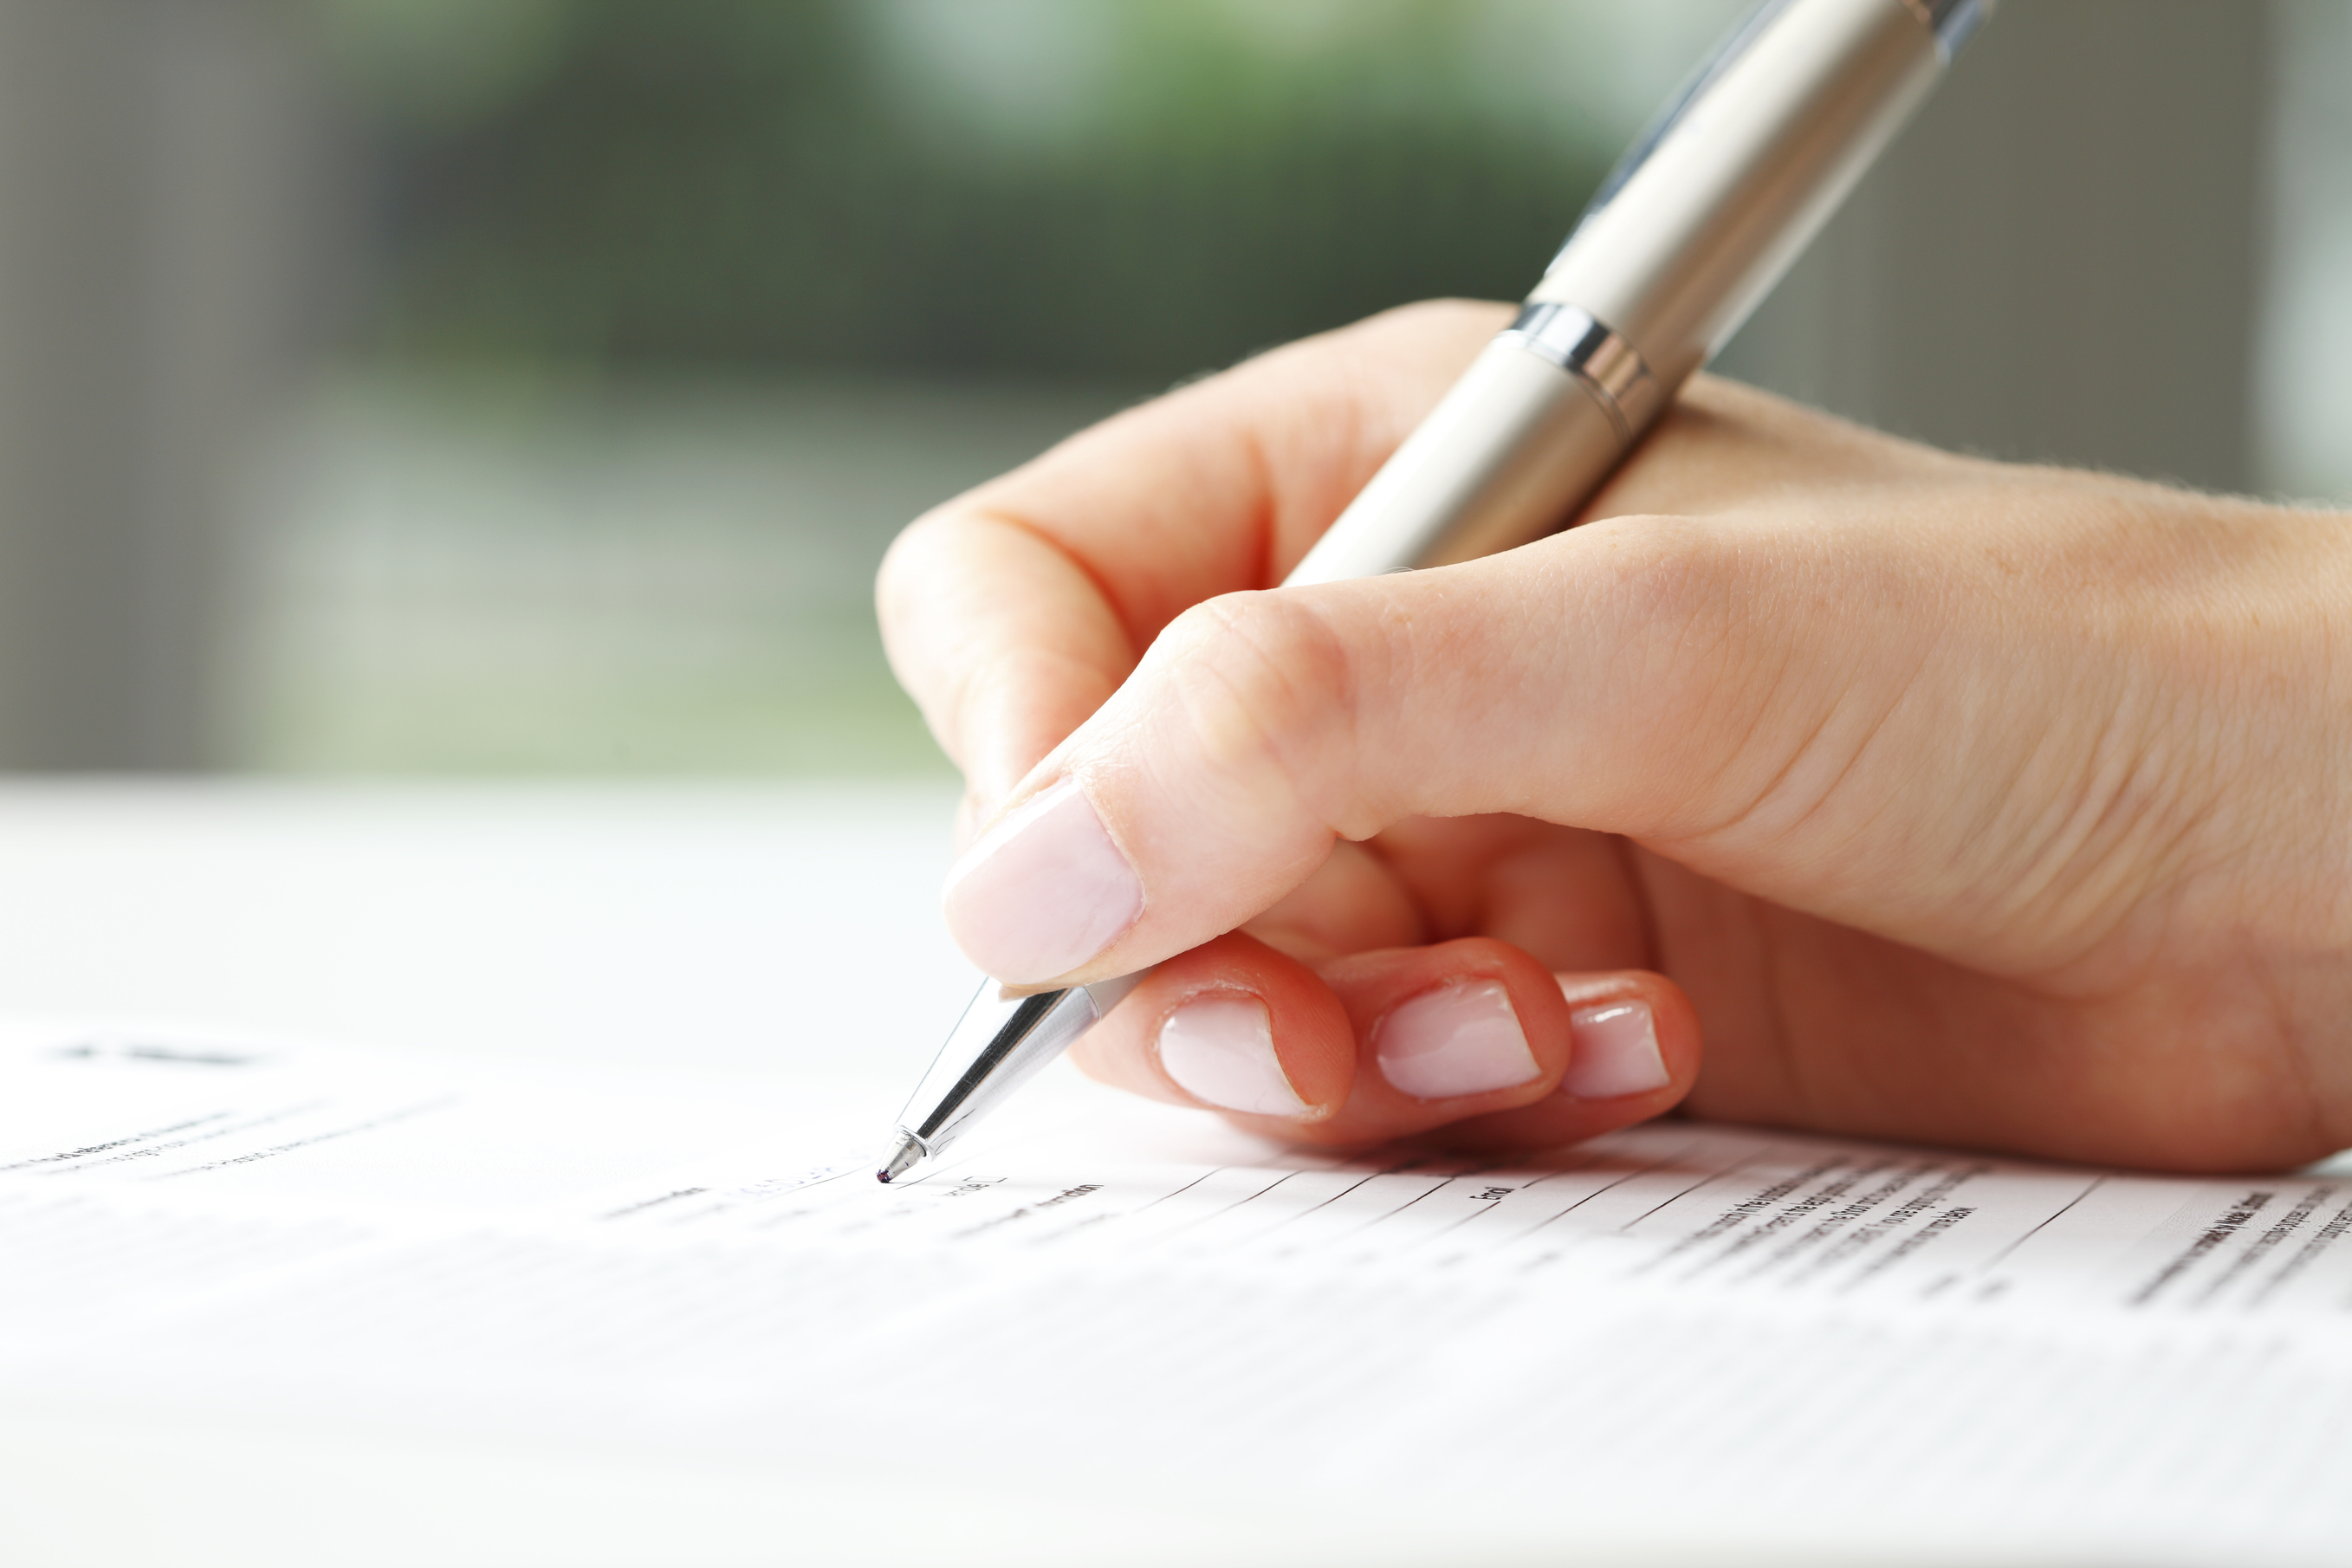 Woman writing on a form